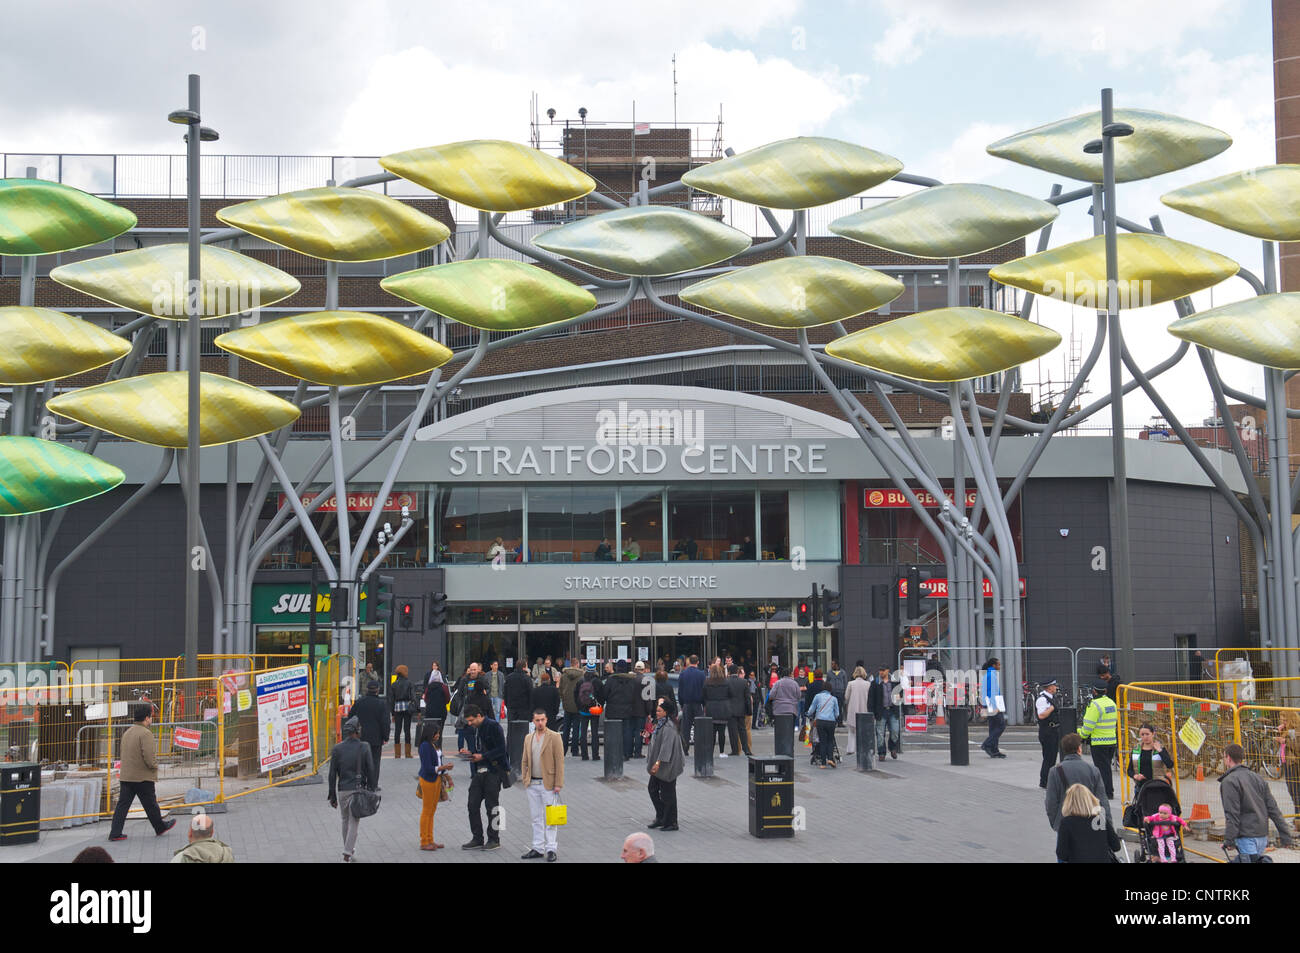 The Shoal Artwork and Stratford Shopping Centre, Stratford Town Centre, London, England, UK - Stock Image